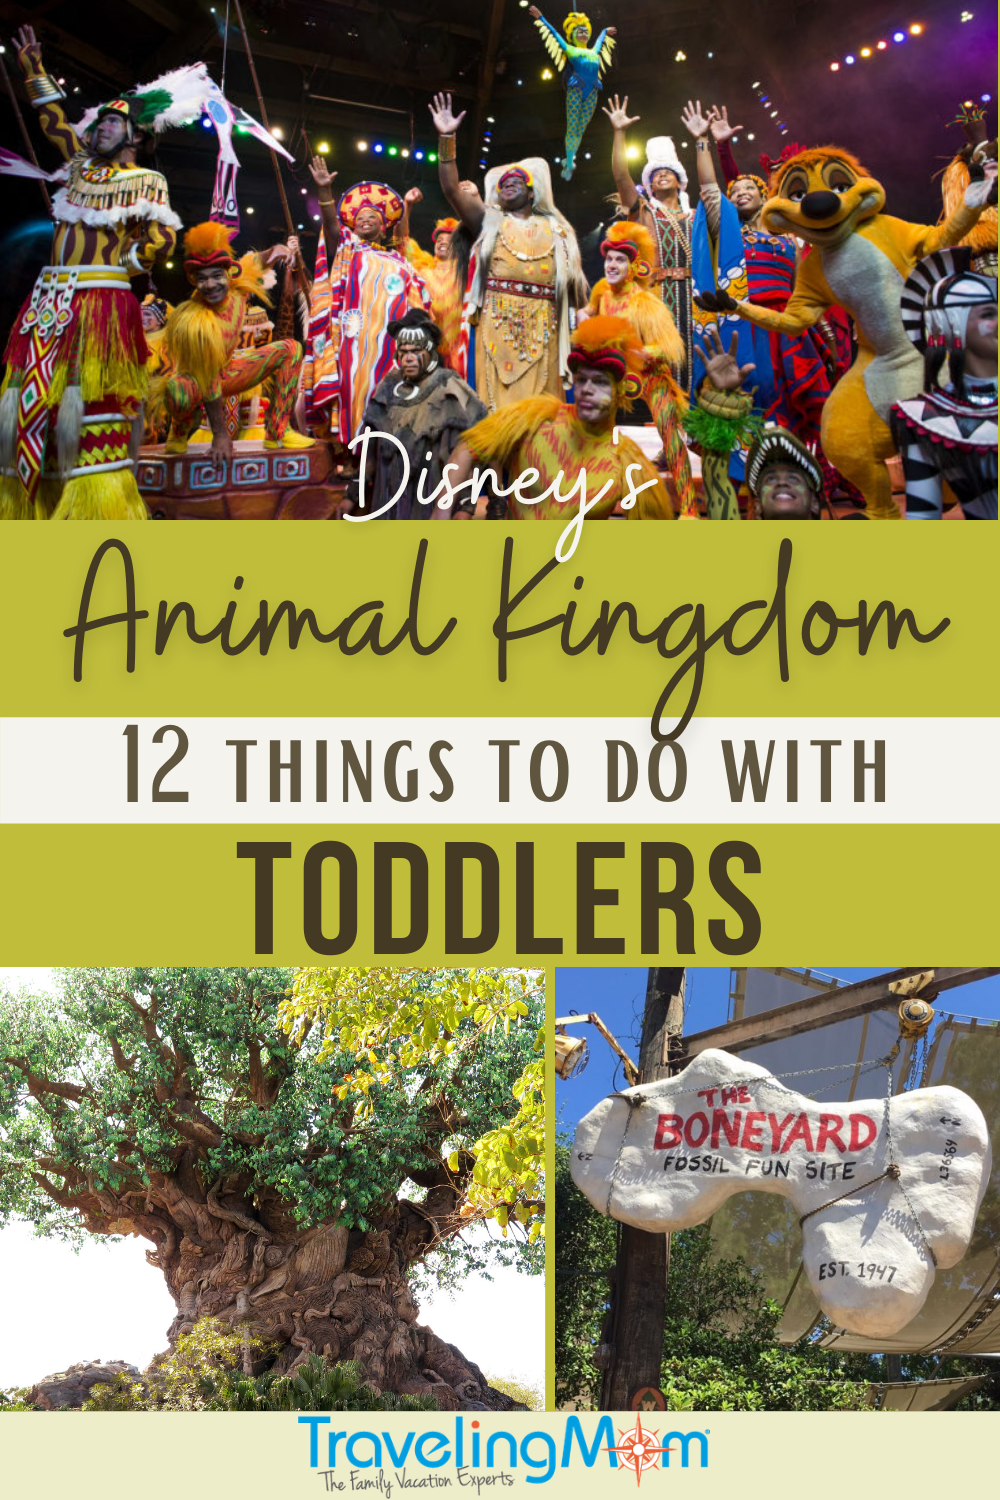 text on pin reads disney's animal kingdom 12 things to do with toddlers image of tree of life, boneyard playground and performers